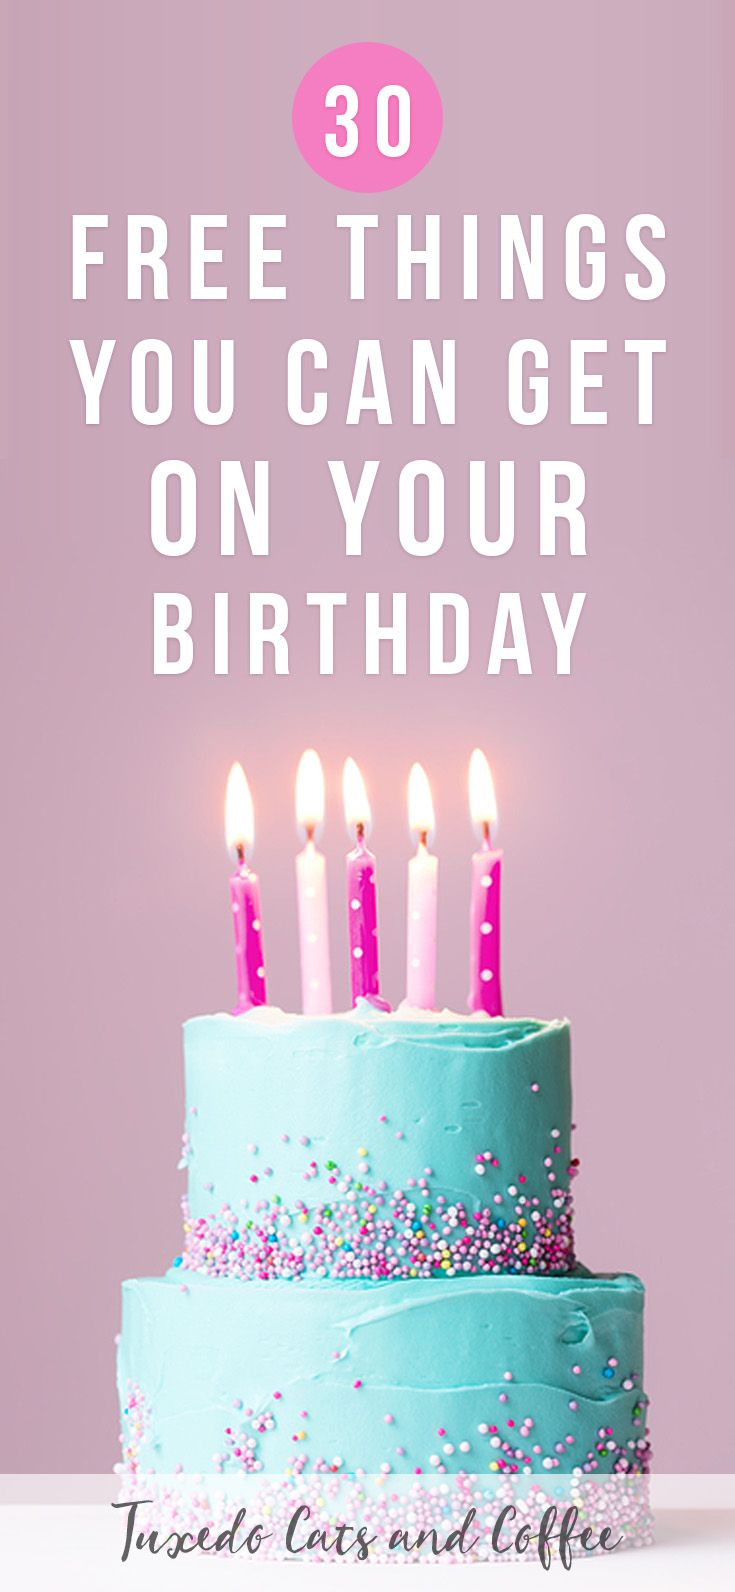 Yogurtland- As a member of Yogurtland Real Rewards, you get a free three-ounce treat on your birthday. Free Gifts and Surprises. Benihana – Register for The Chef's Table and get a $30 gift certificate during the month of your birthday. B. Good – Score a birthday gift when you become a .